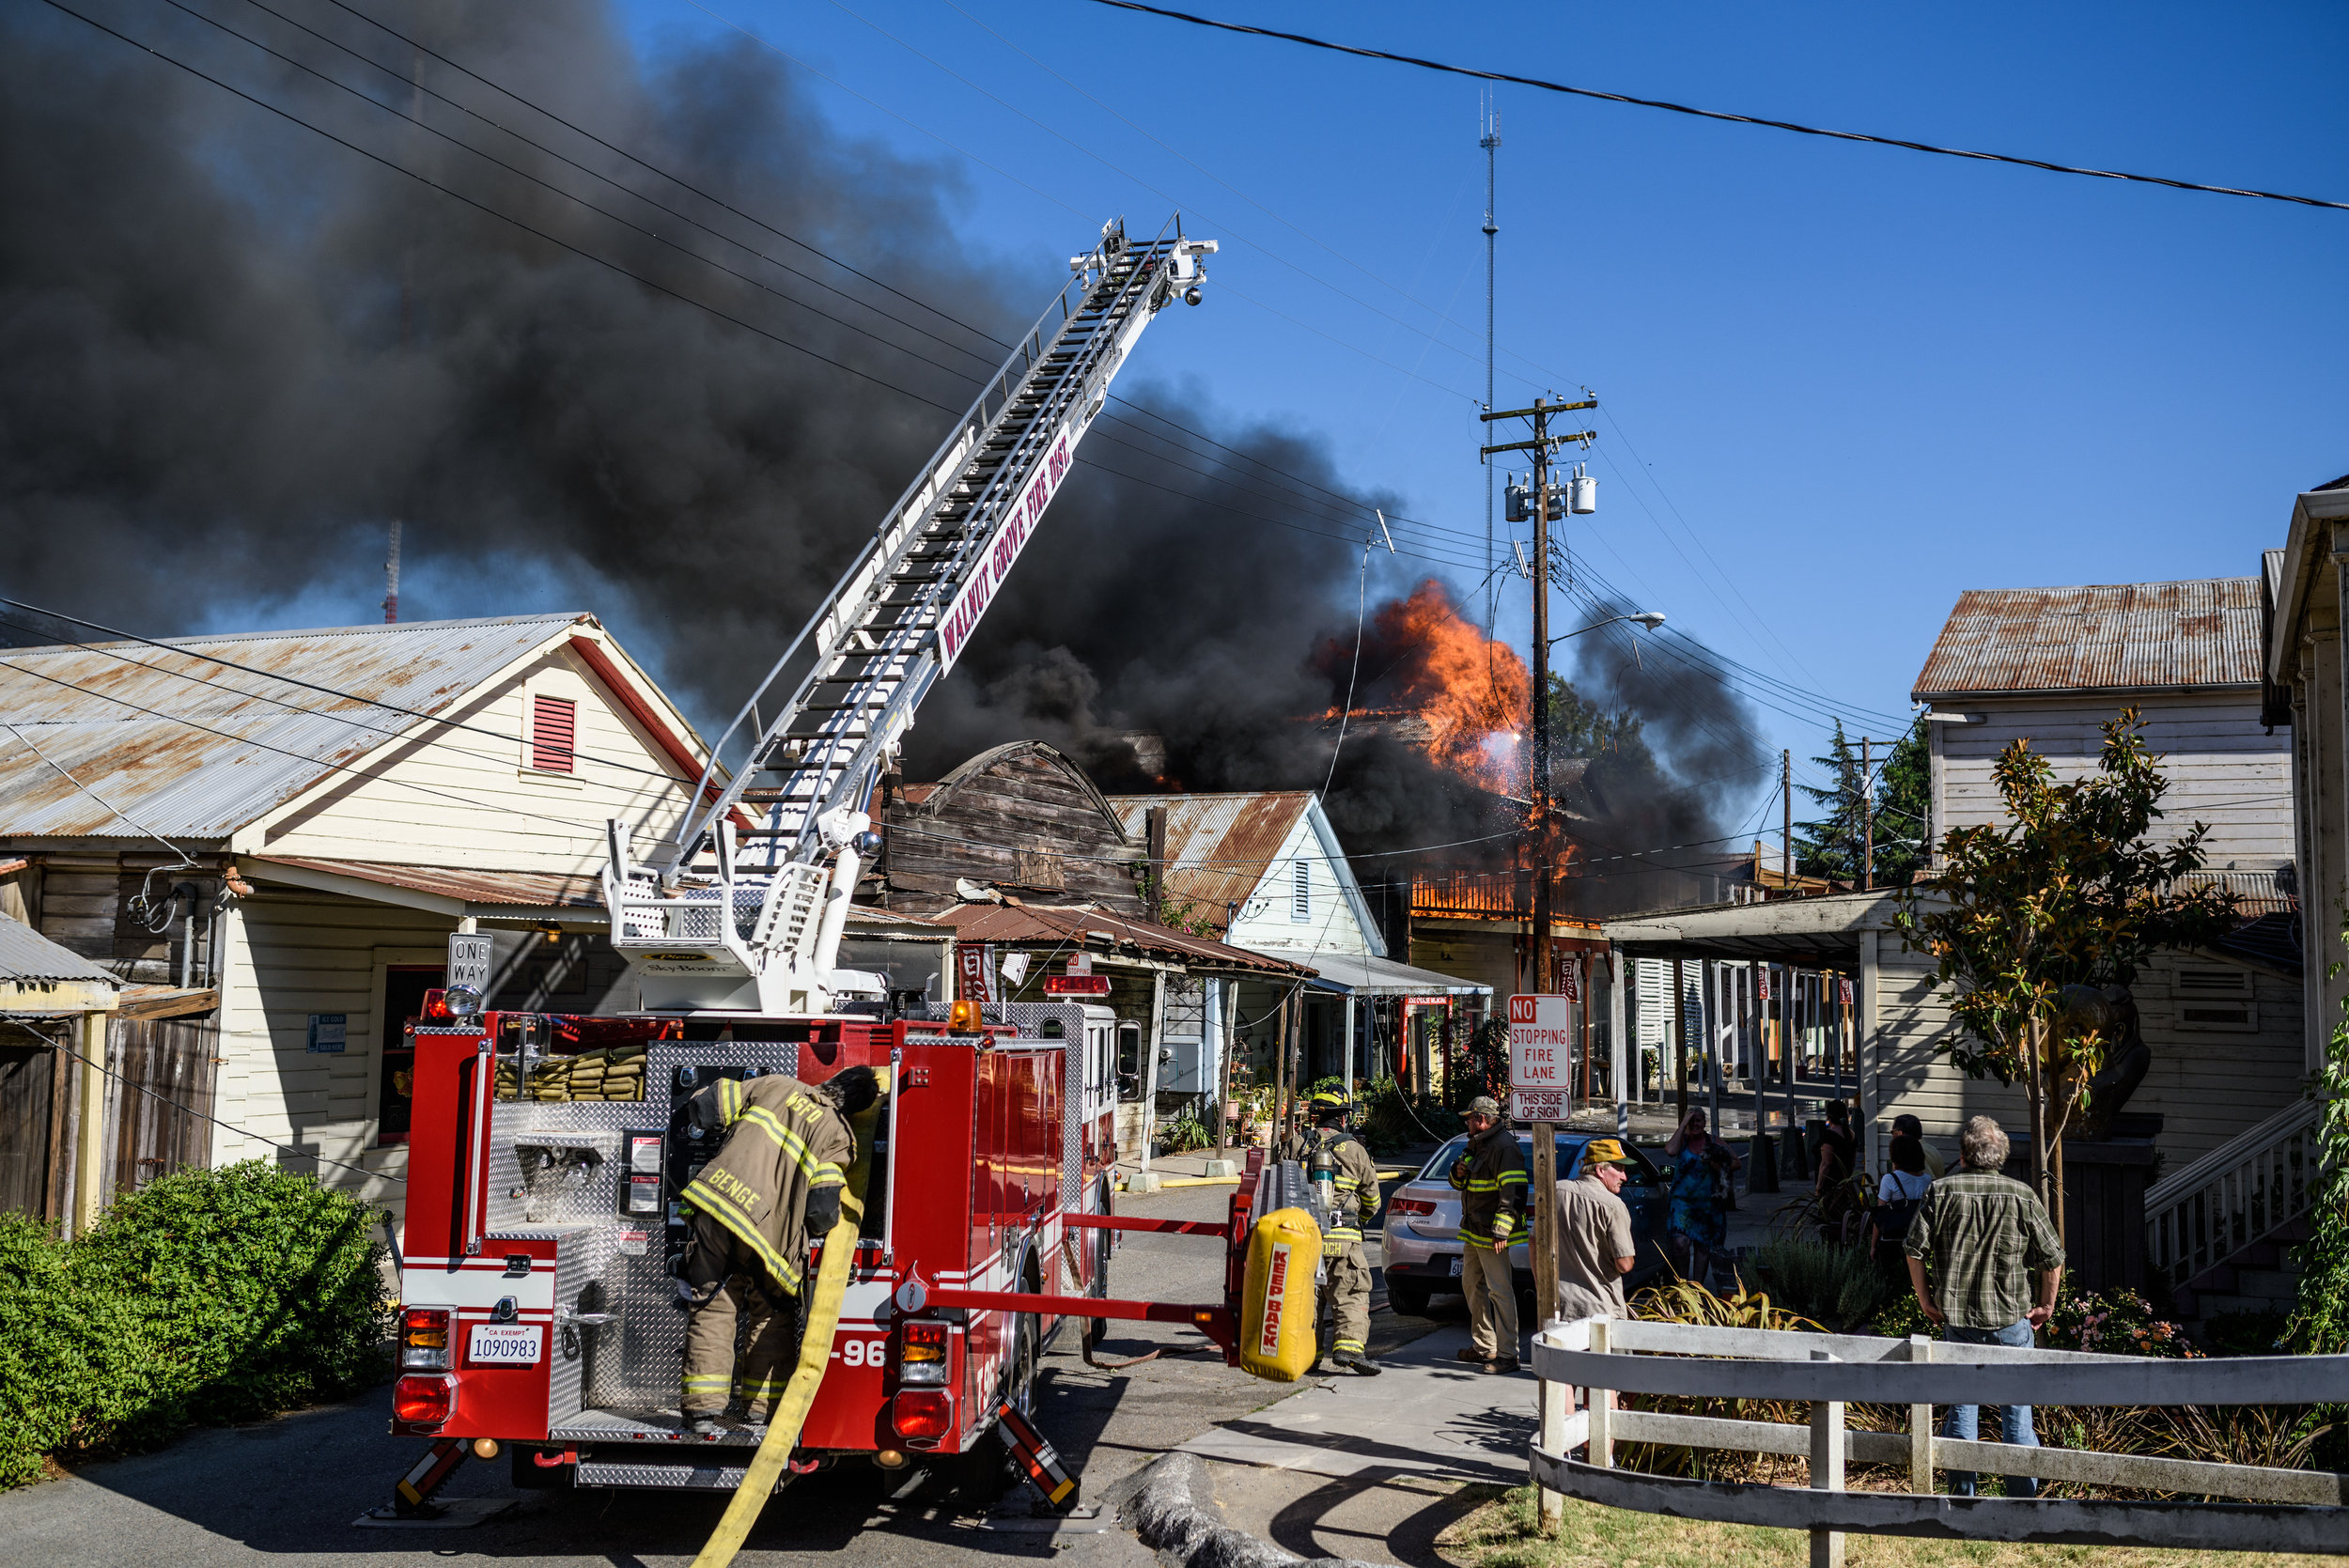 Fire in historically Chinese Locke, California